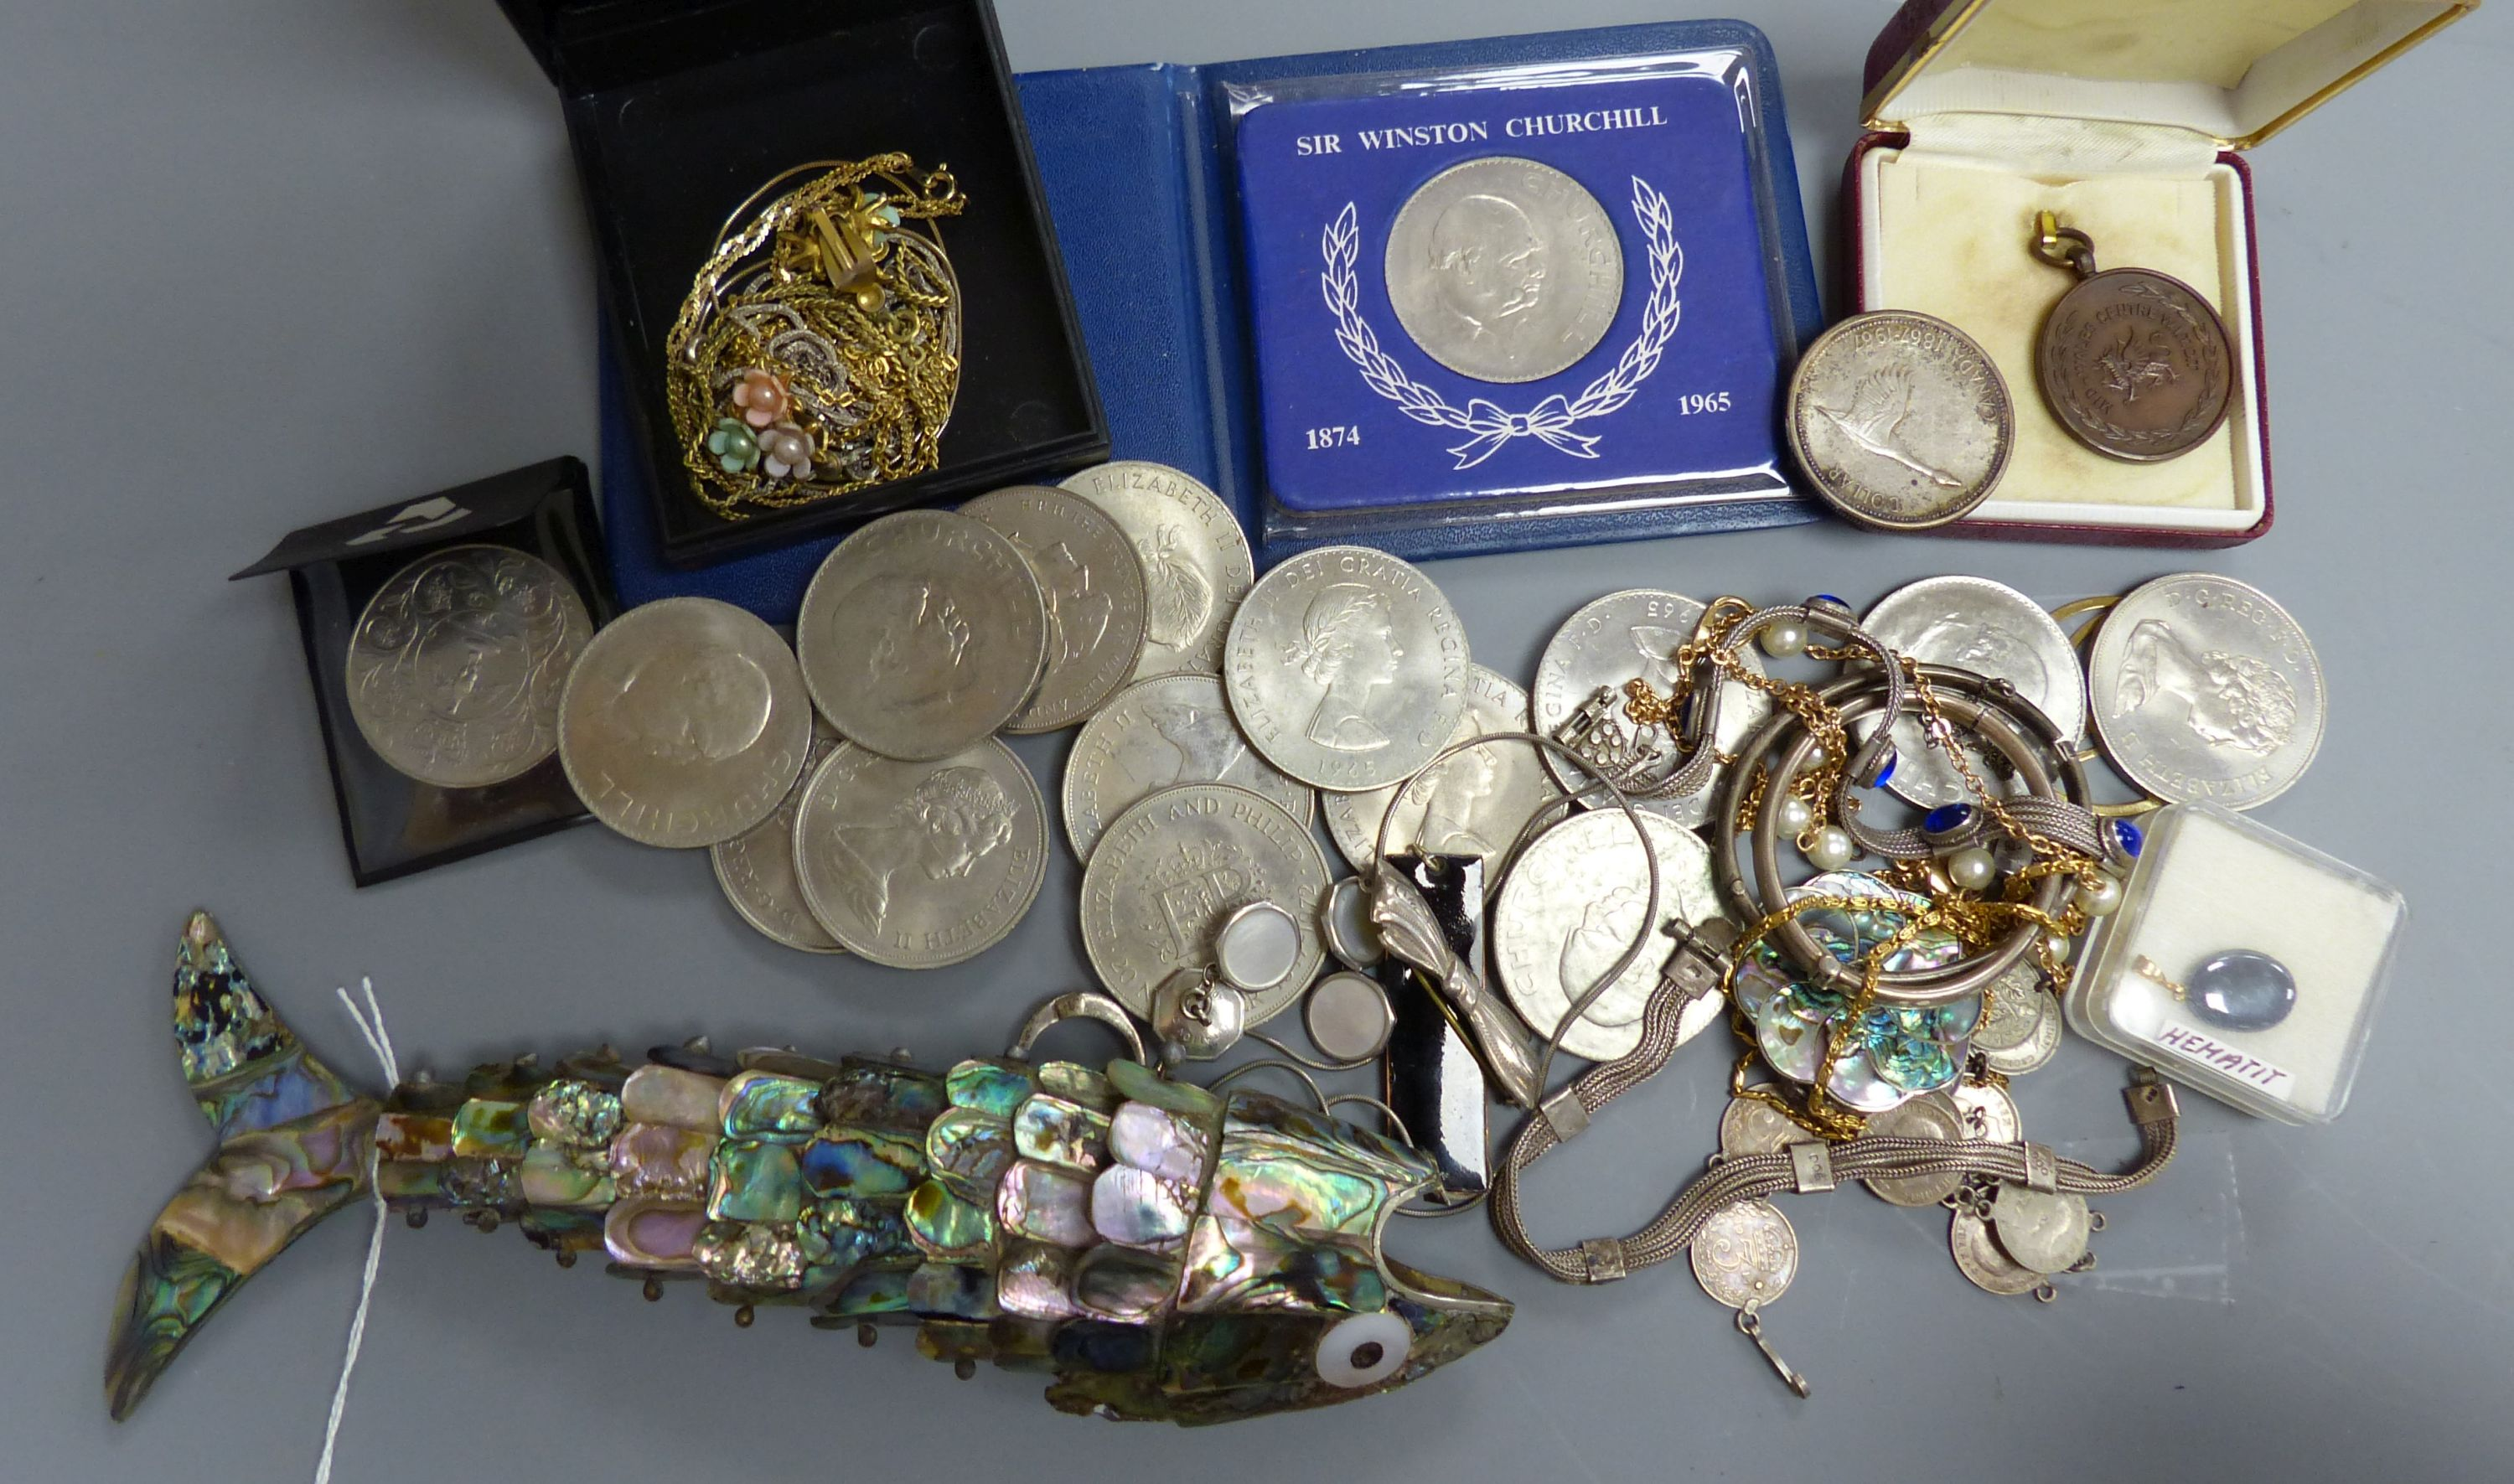 A quantity of mixed costume jewellery, an articulated fish, coins etc